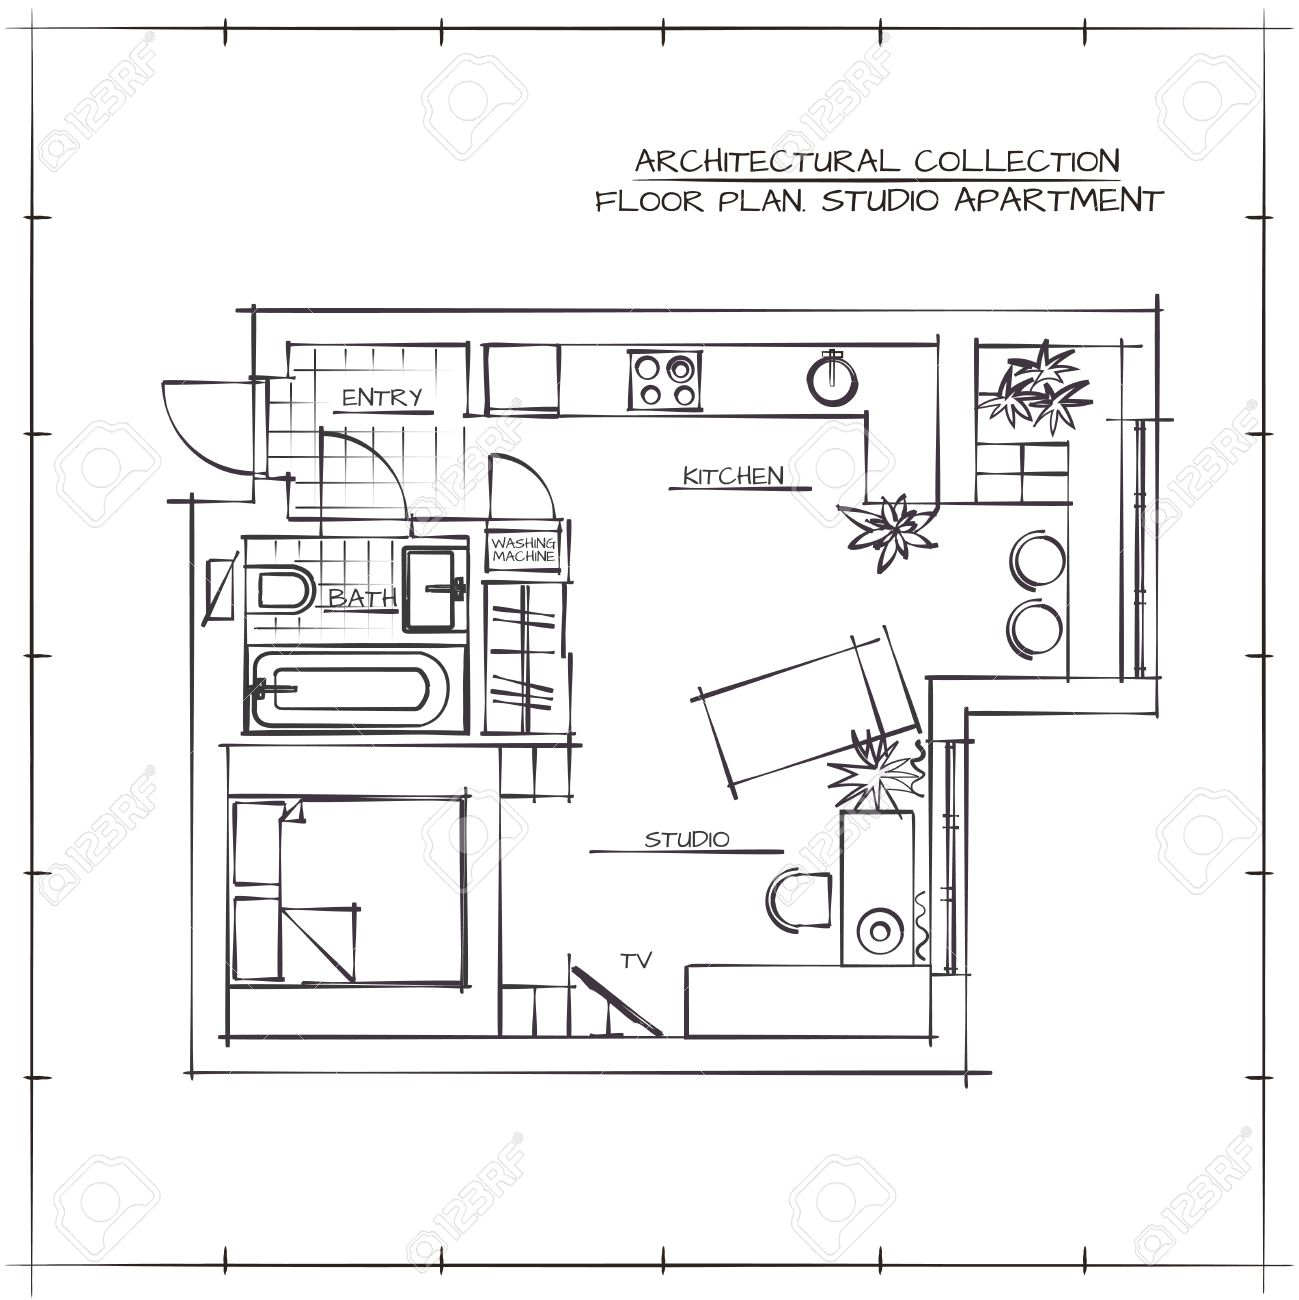 Architectural Hand Drawn Floor Plan. Studio Apartment Stock Vector    55412709